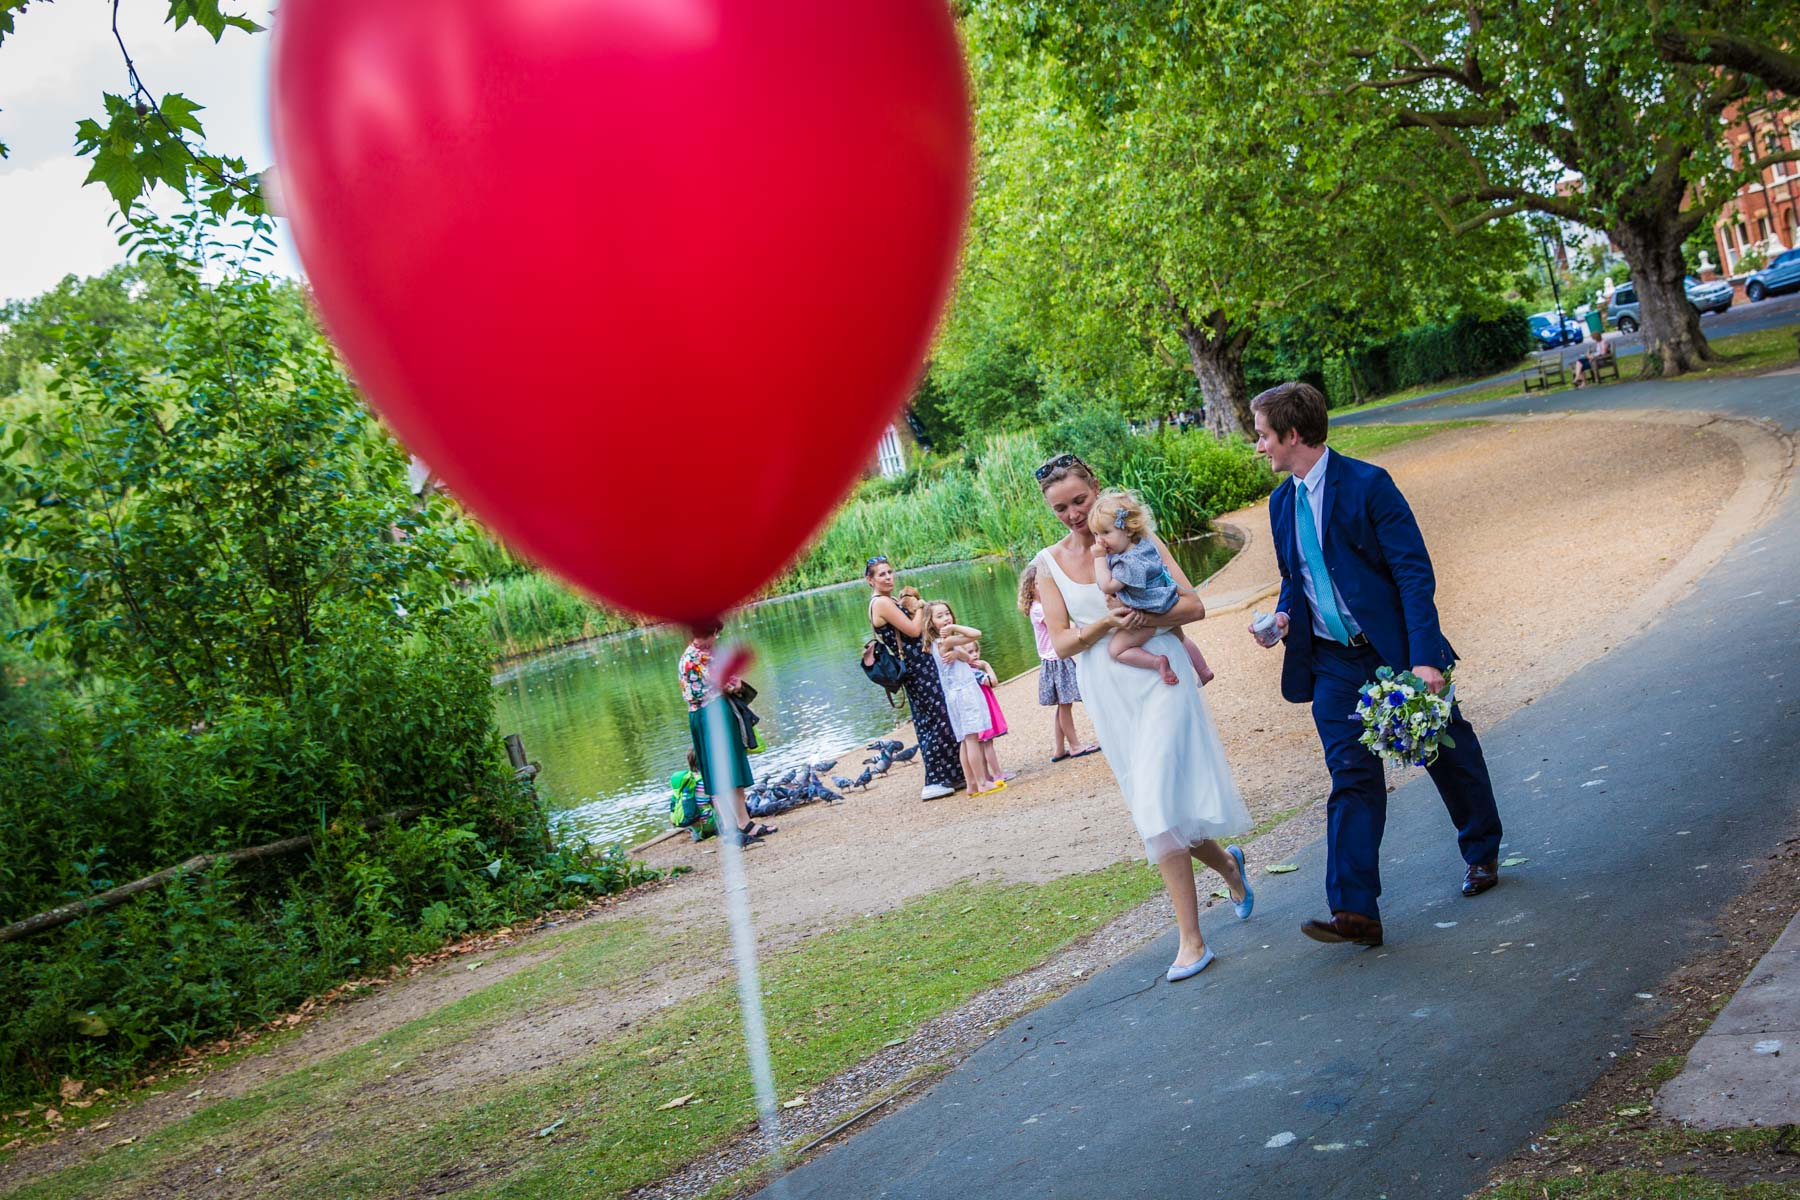 Barnes Wedding Photography by London Wedding Photographer Richard Murgatroyd